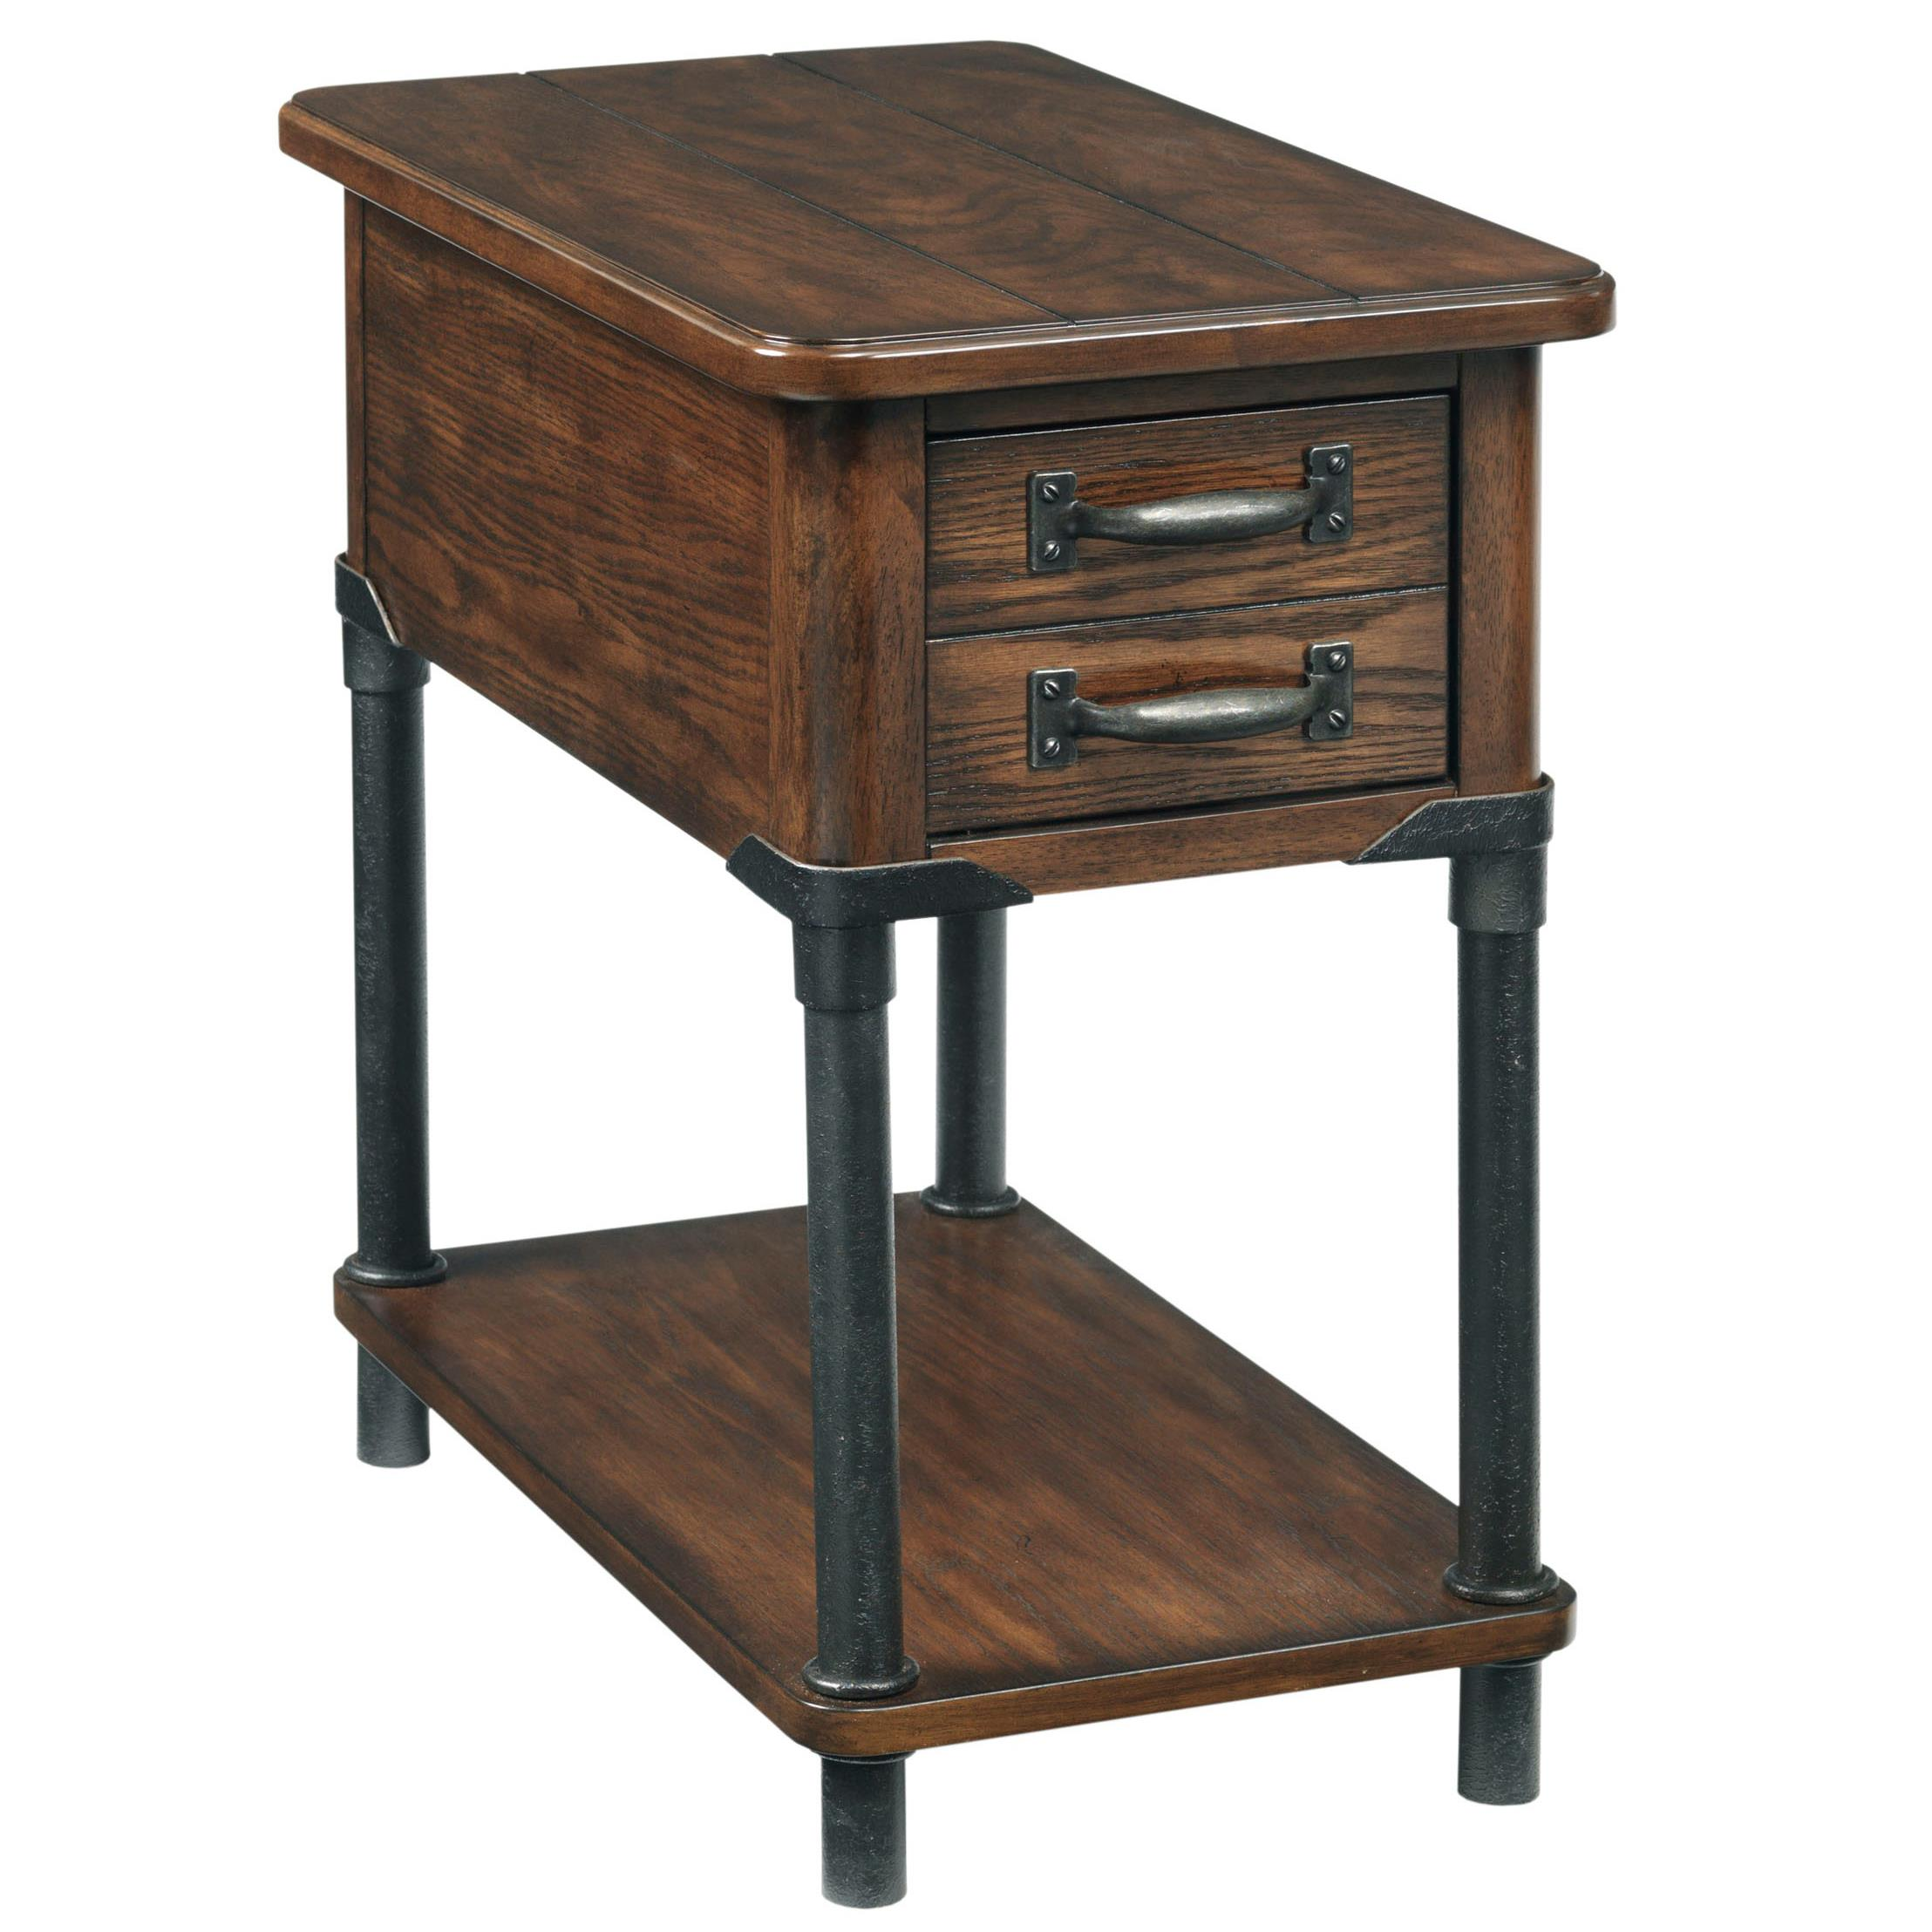 the terrific awesome broyhill end table with power ture mira road furniture saluda accent shelf wayside products color item number clock vintage walnut concrete outdoor ethan